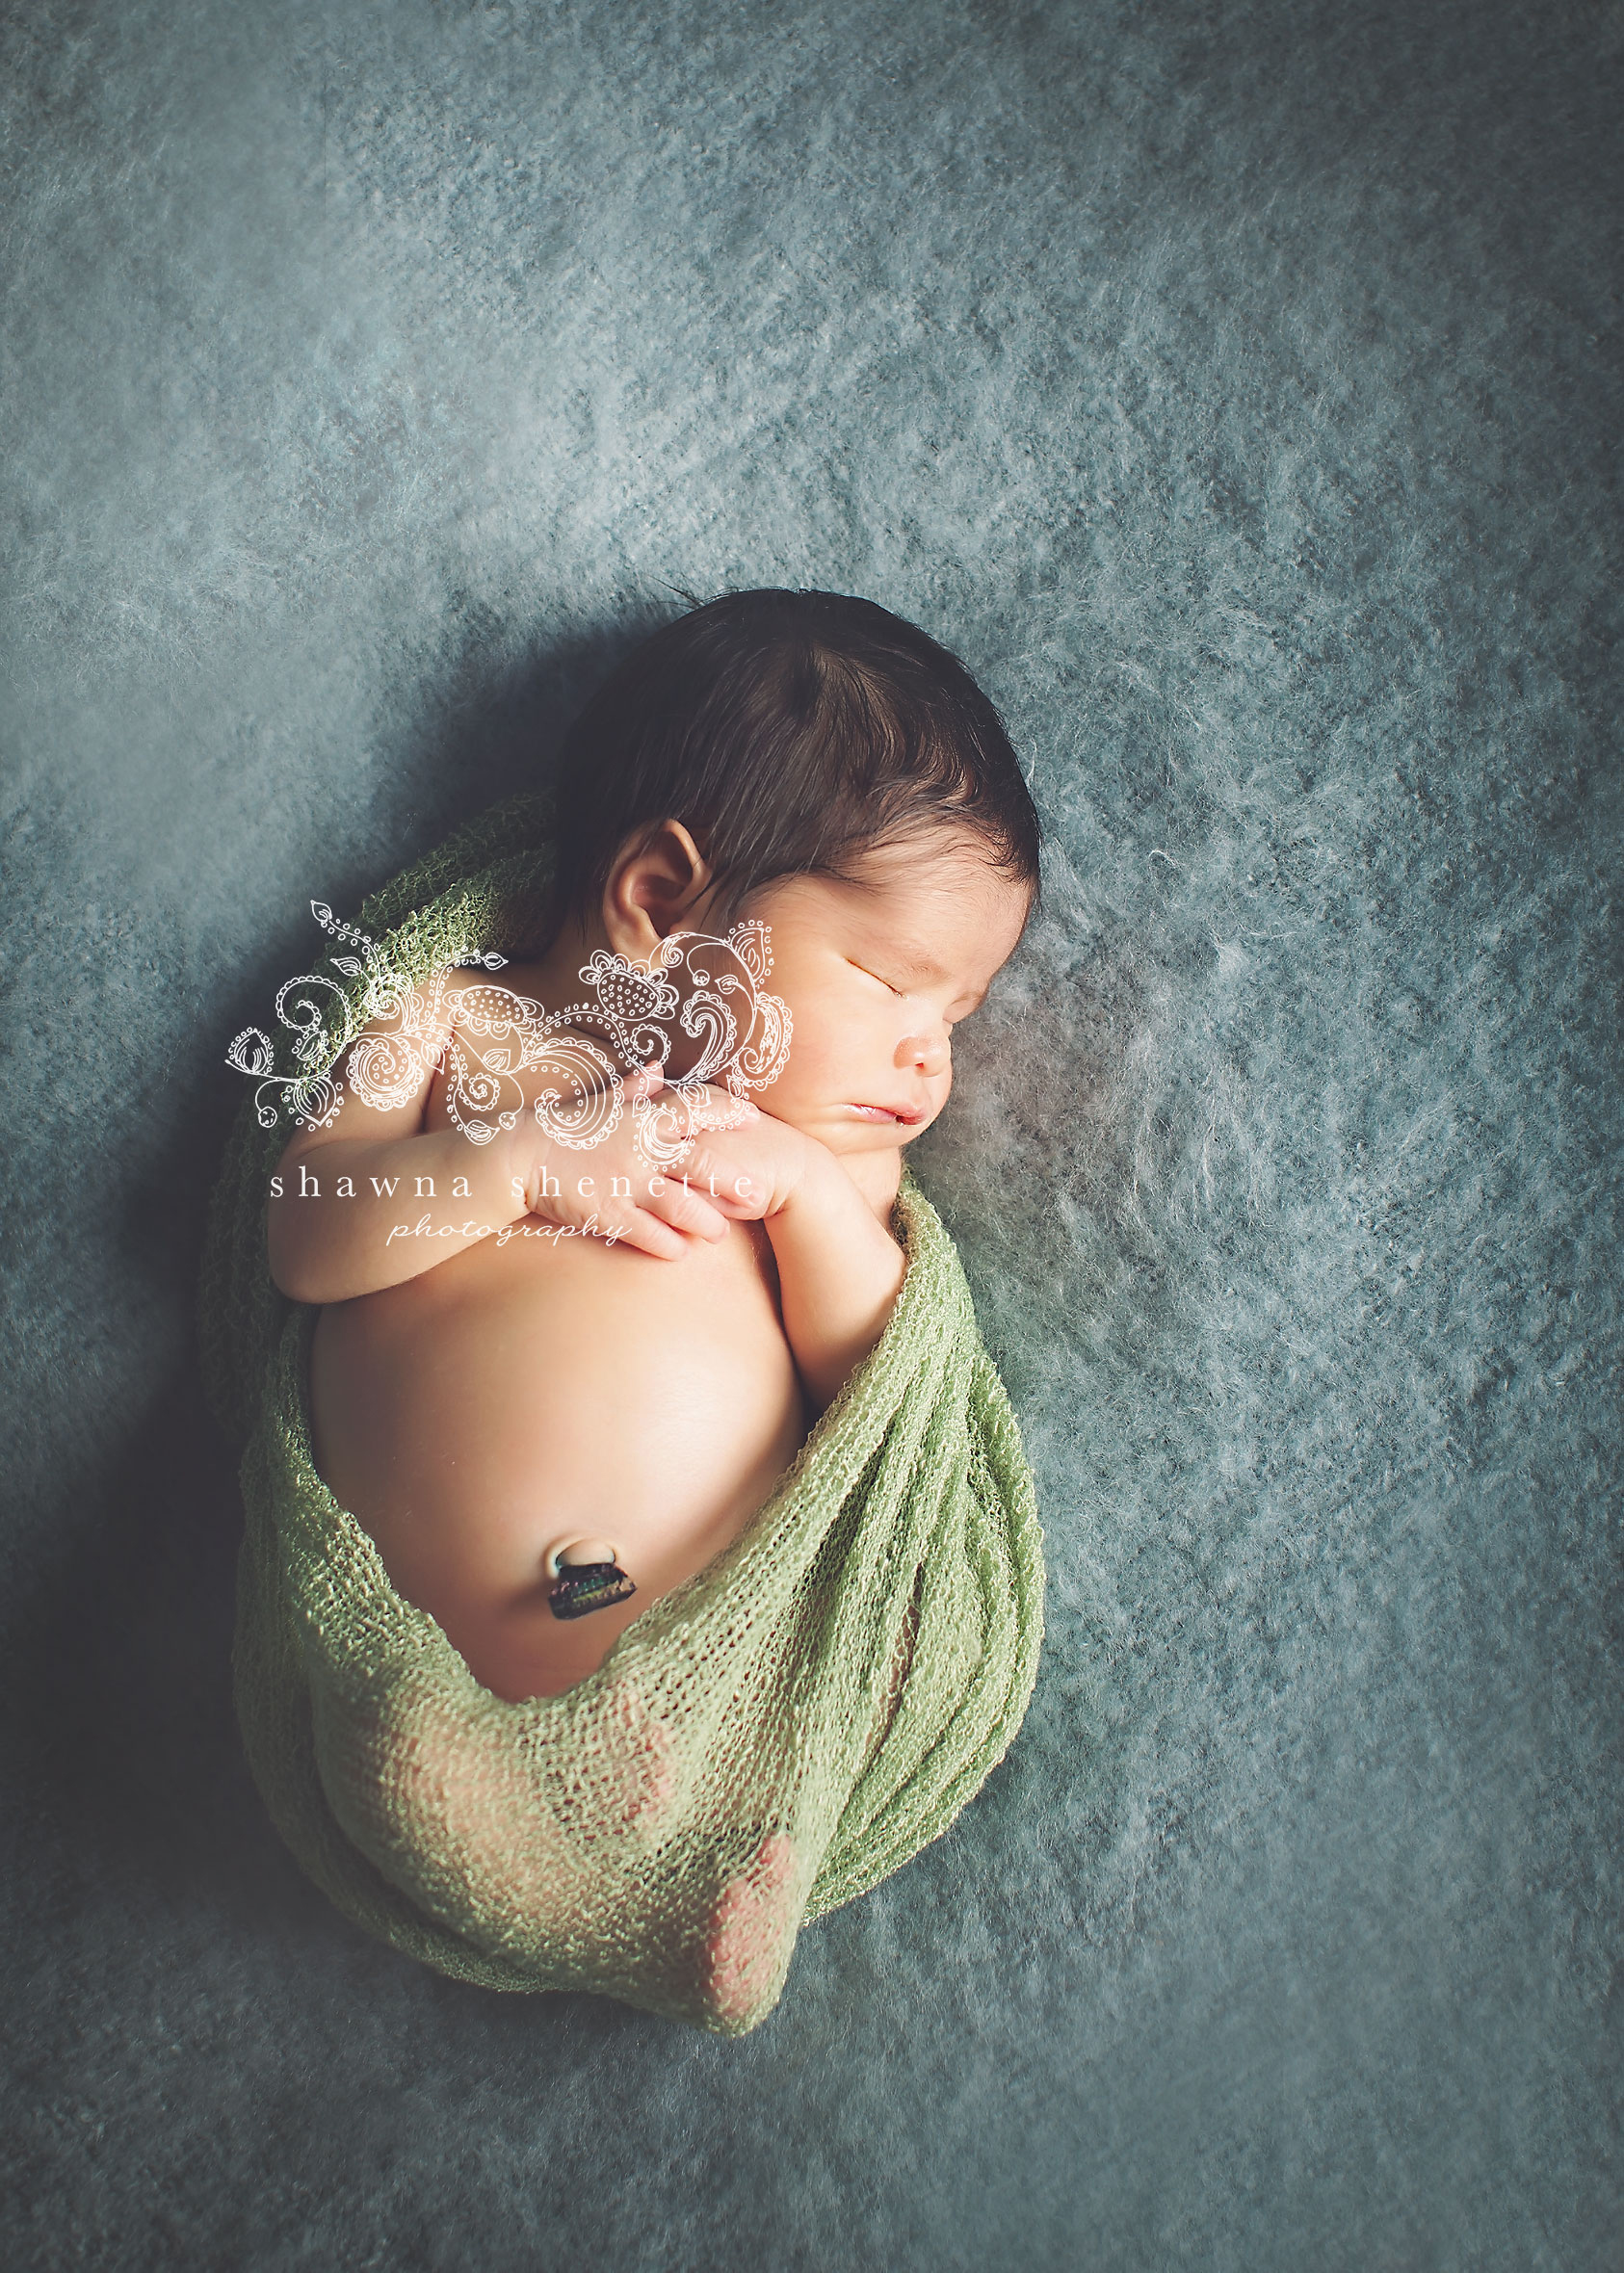 Massachusetts Newborn Baby Boy Portrait Photographer Best Millbury Auburn Worcester Metrowest Grafton Shrewsbury